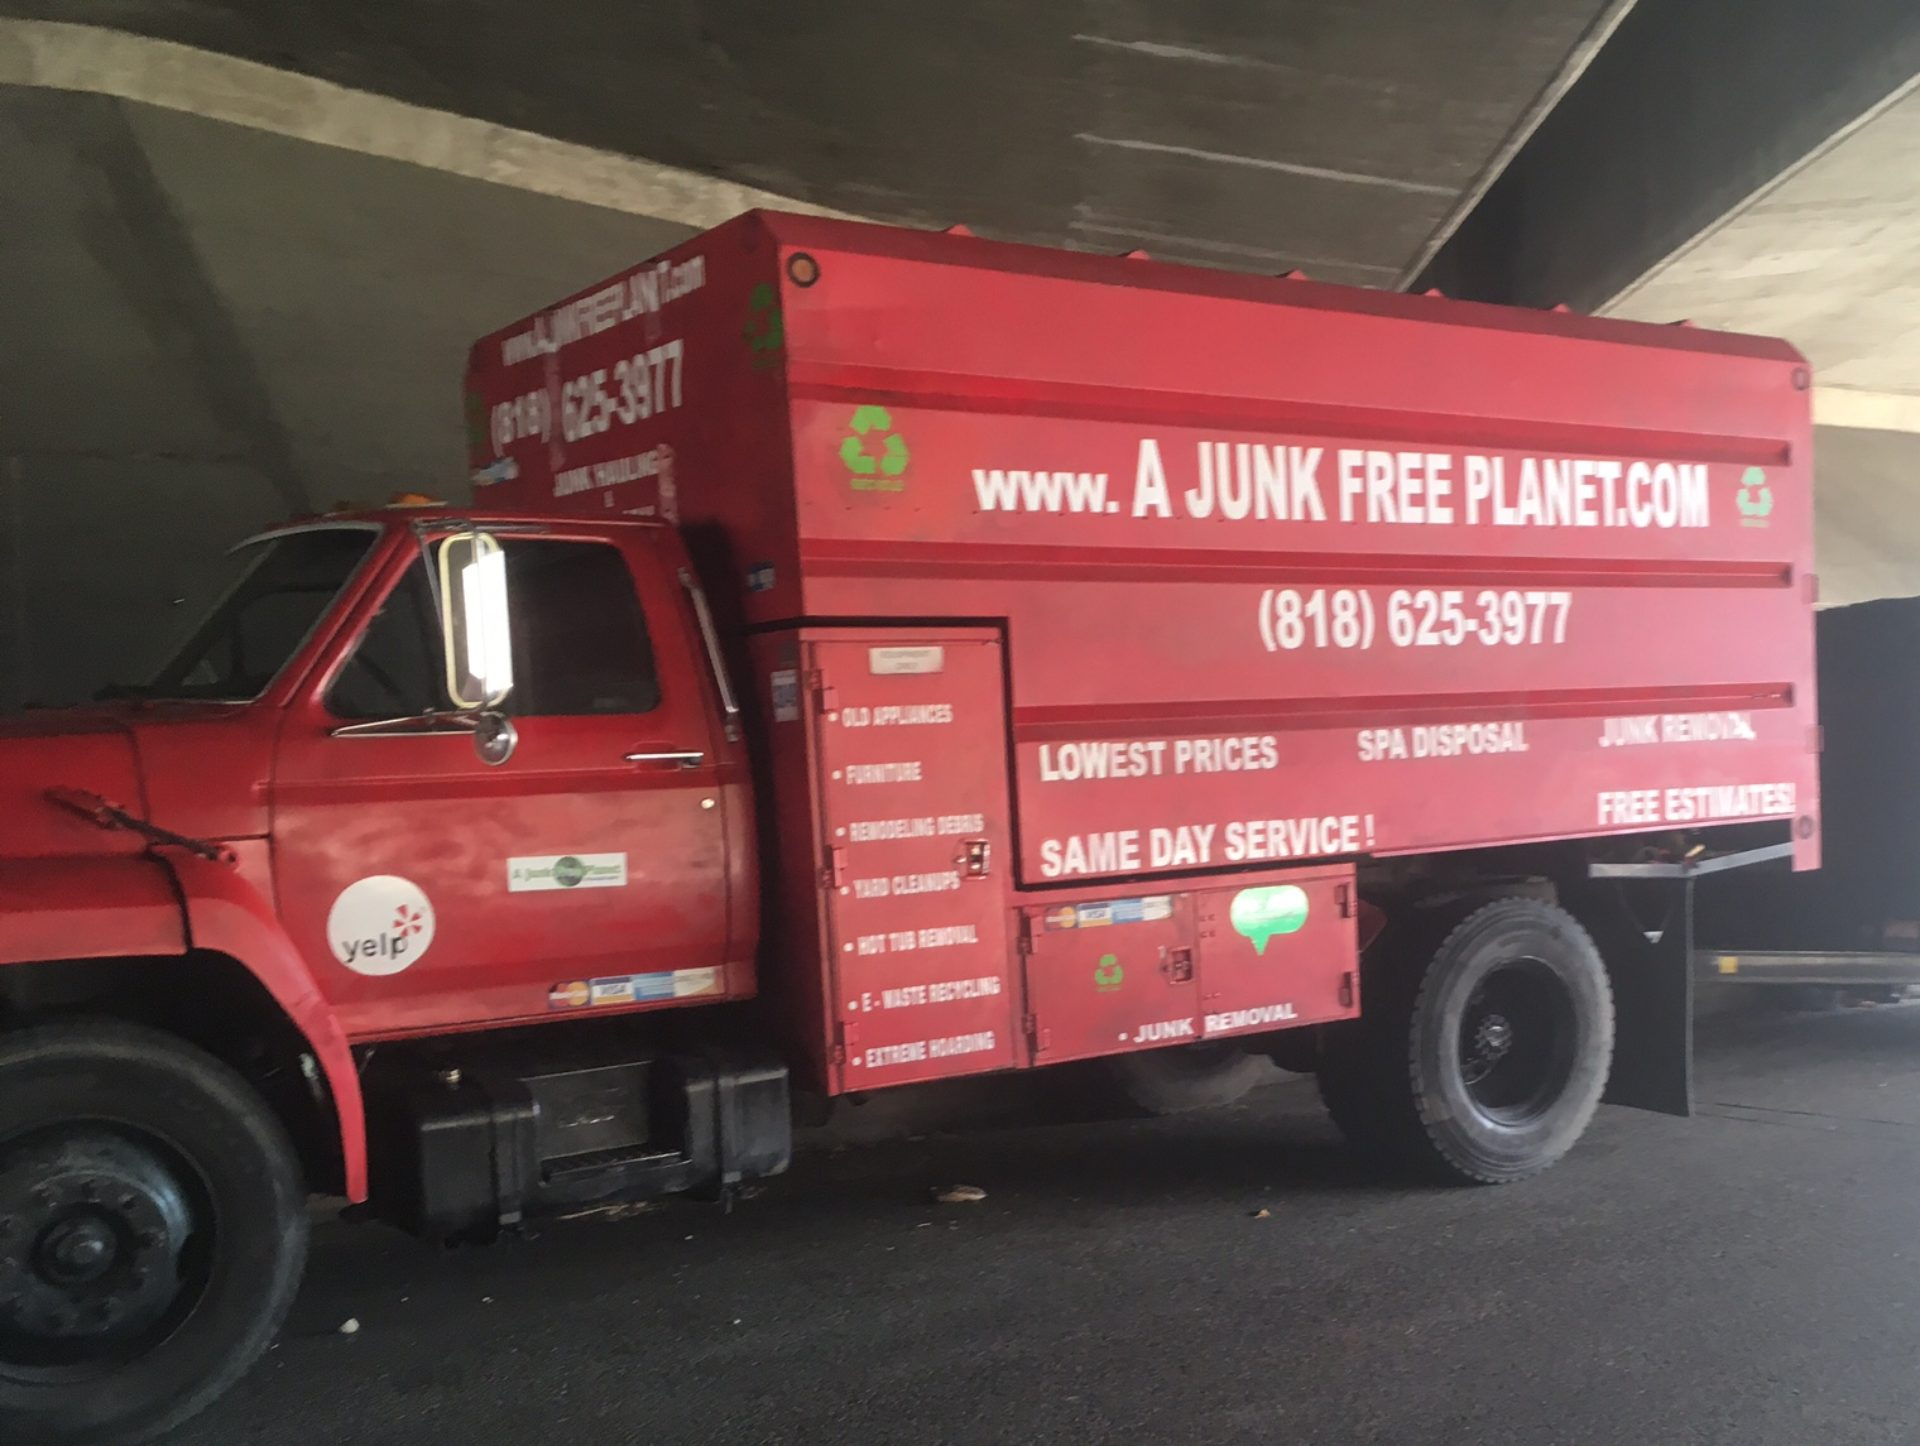 JUNK HAULING, JUNK REMOVAL, HOT TUB & SPA REMOVAL SERVICE  A JUNK FREE PLANET